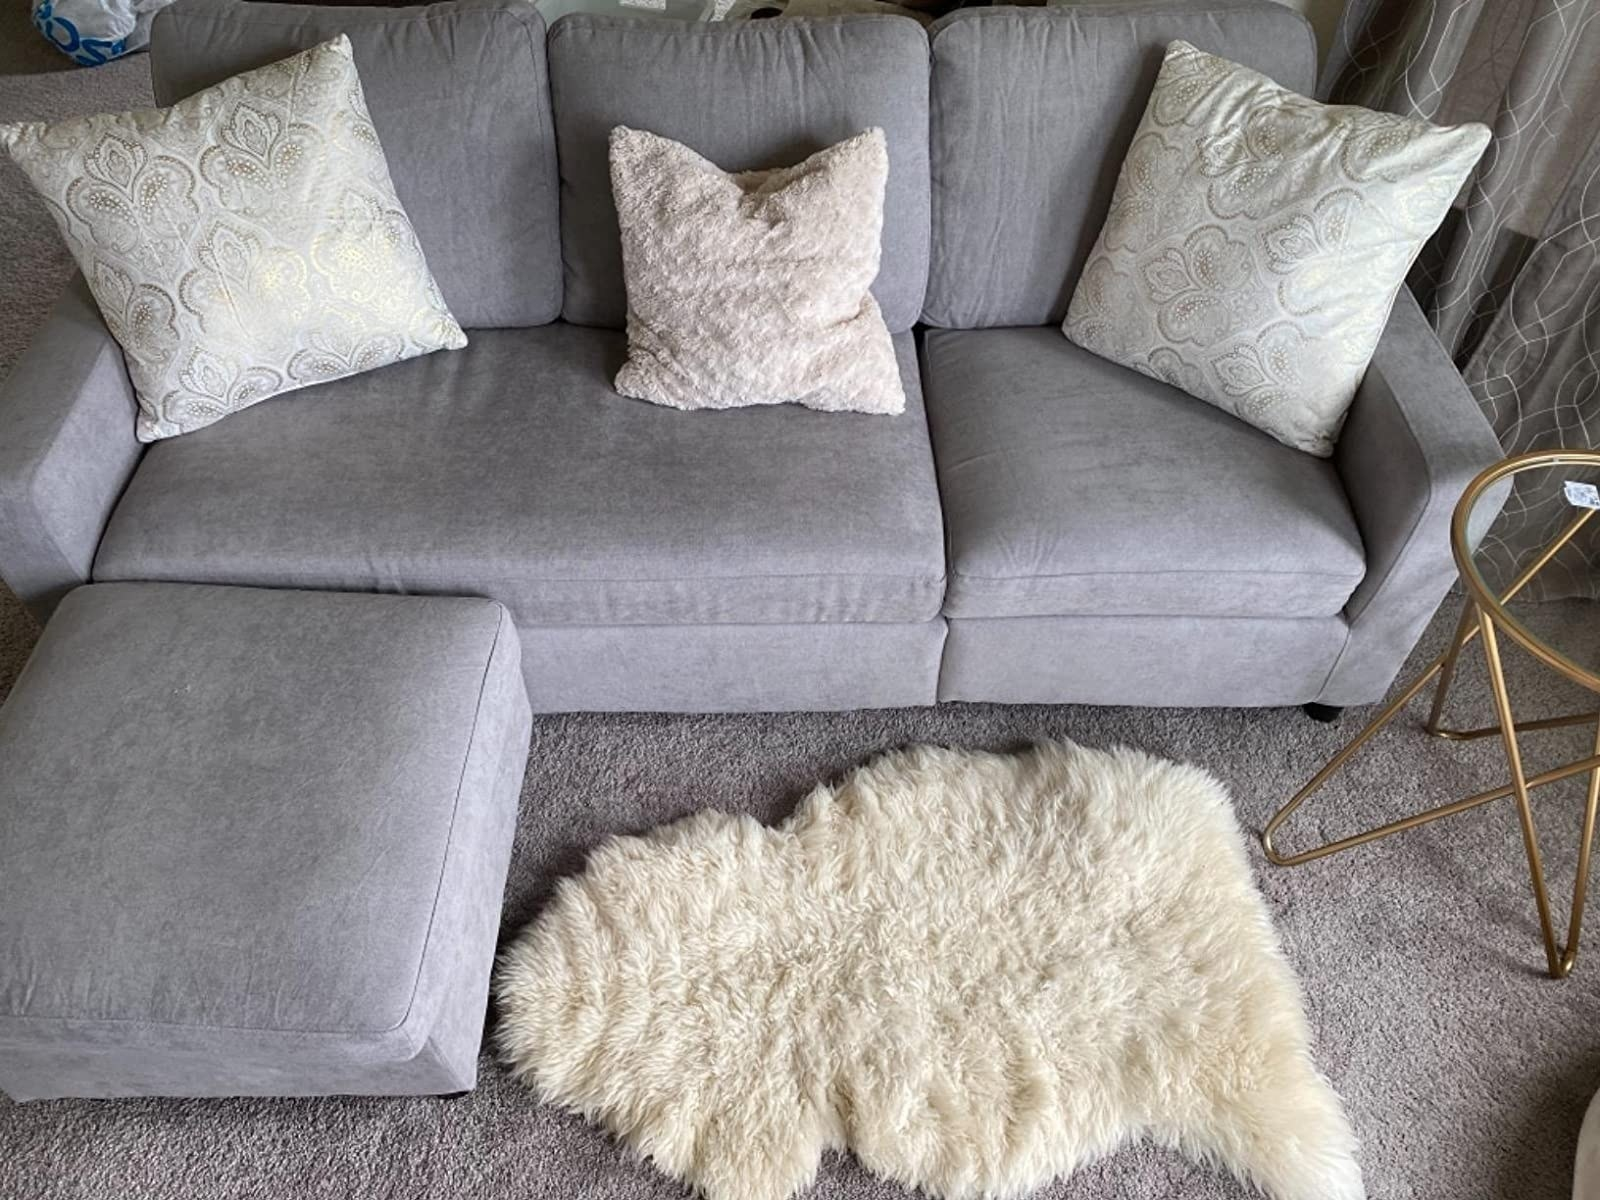 The L-shaped sofa with thick cushions in a living room